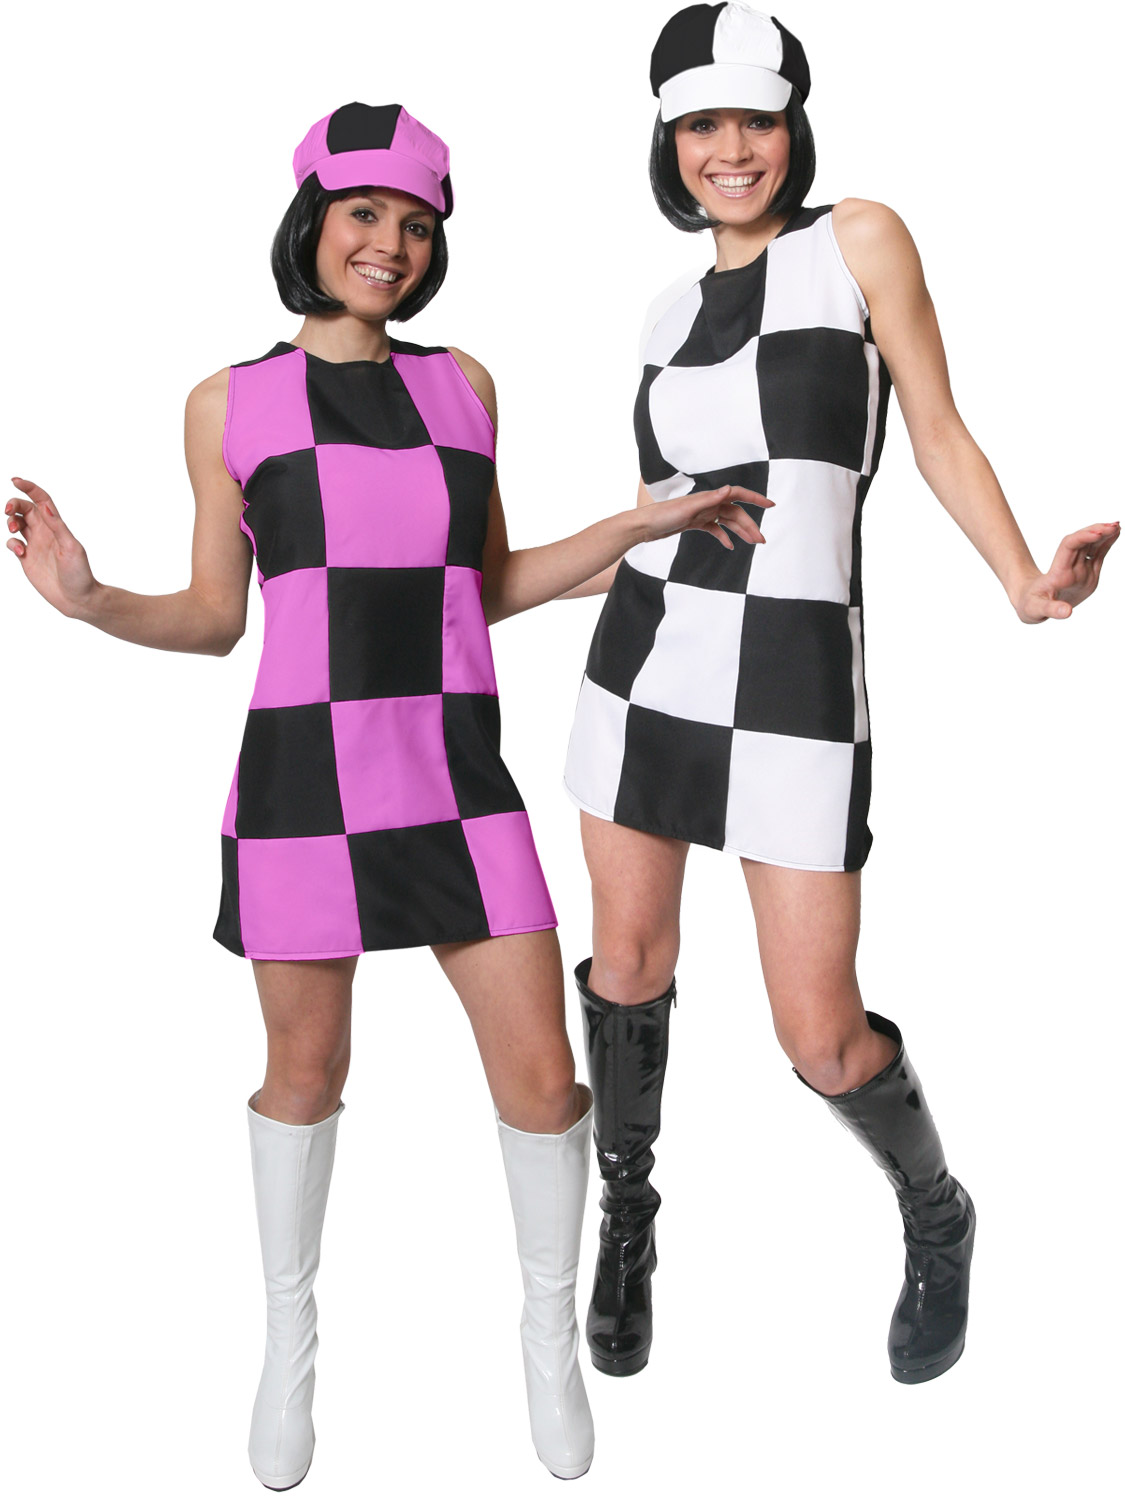 Ladies 1960s Party Girl Costume Adults Swinging 60s 70s Retro Fancy Dress Outfit Ebay